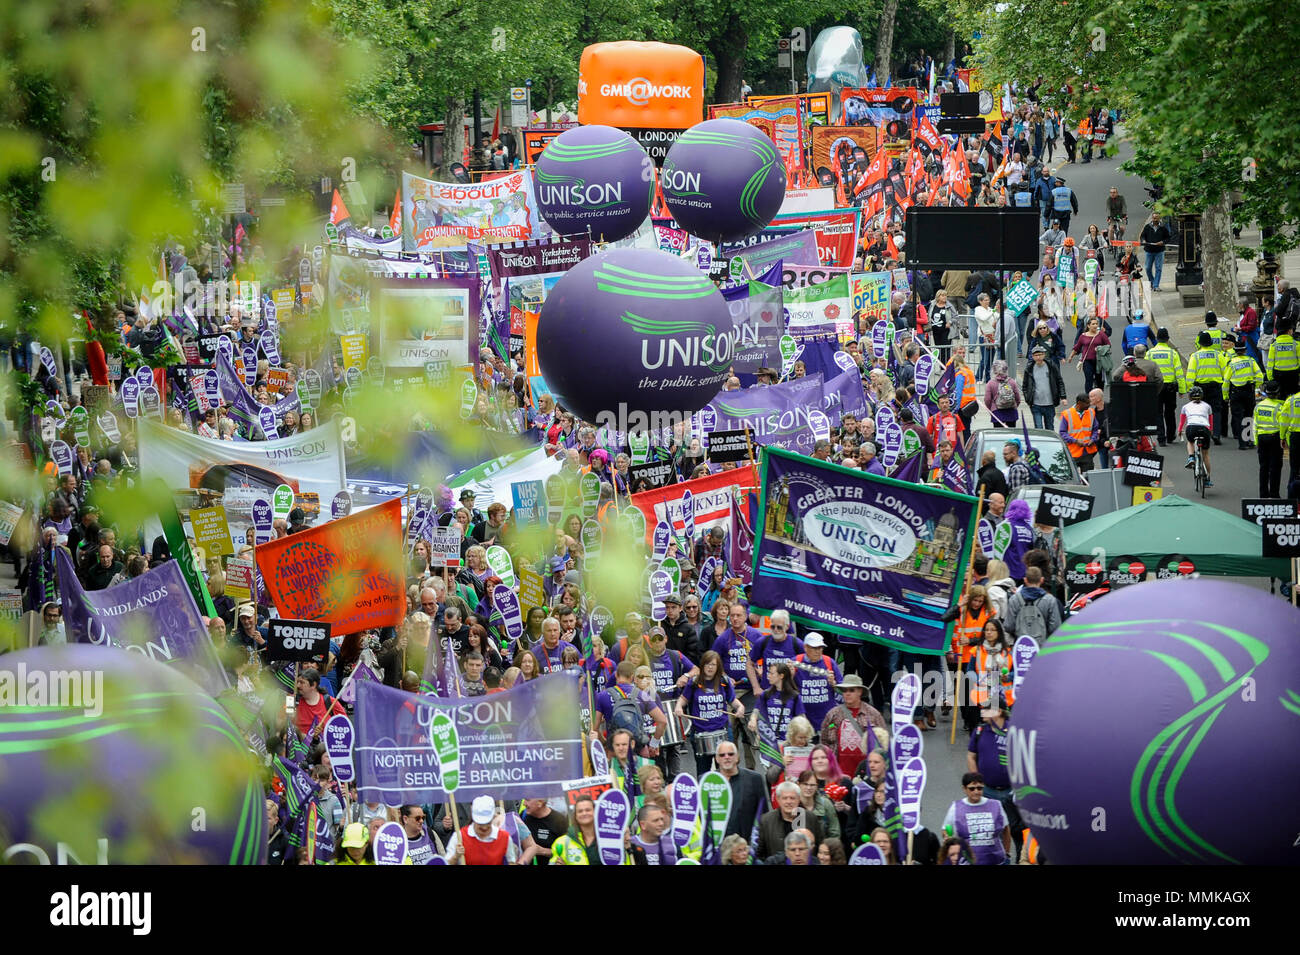 London, UK.  12 May 2018. People join a Trades Union Congress (TUC) march and rally in central London.   Thousands of demonstrators called for improved workers' pay and rights as well as improvement to pubic services as they marched from Embankment to Hyde Park.  Credit: Stephen Chung / Alamy Live News - Stock Image